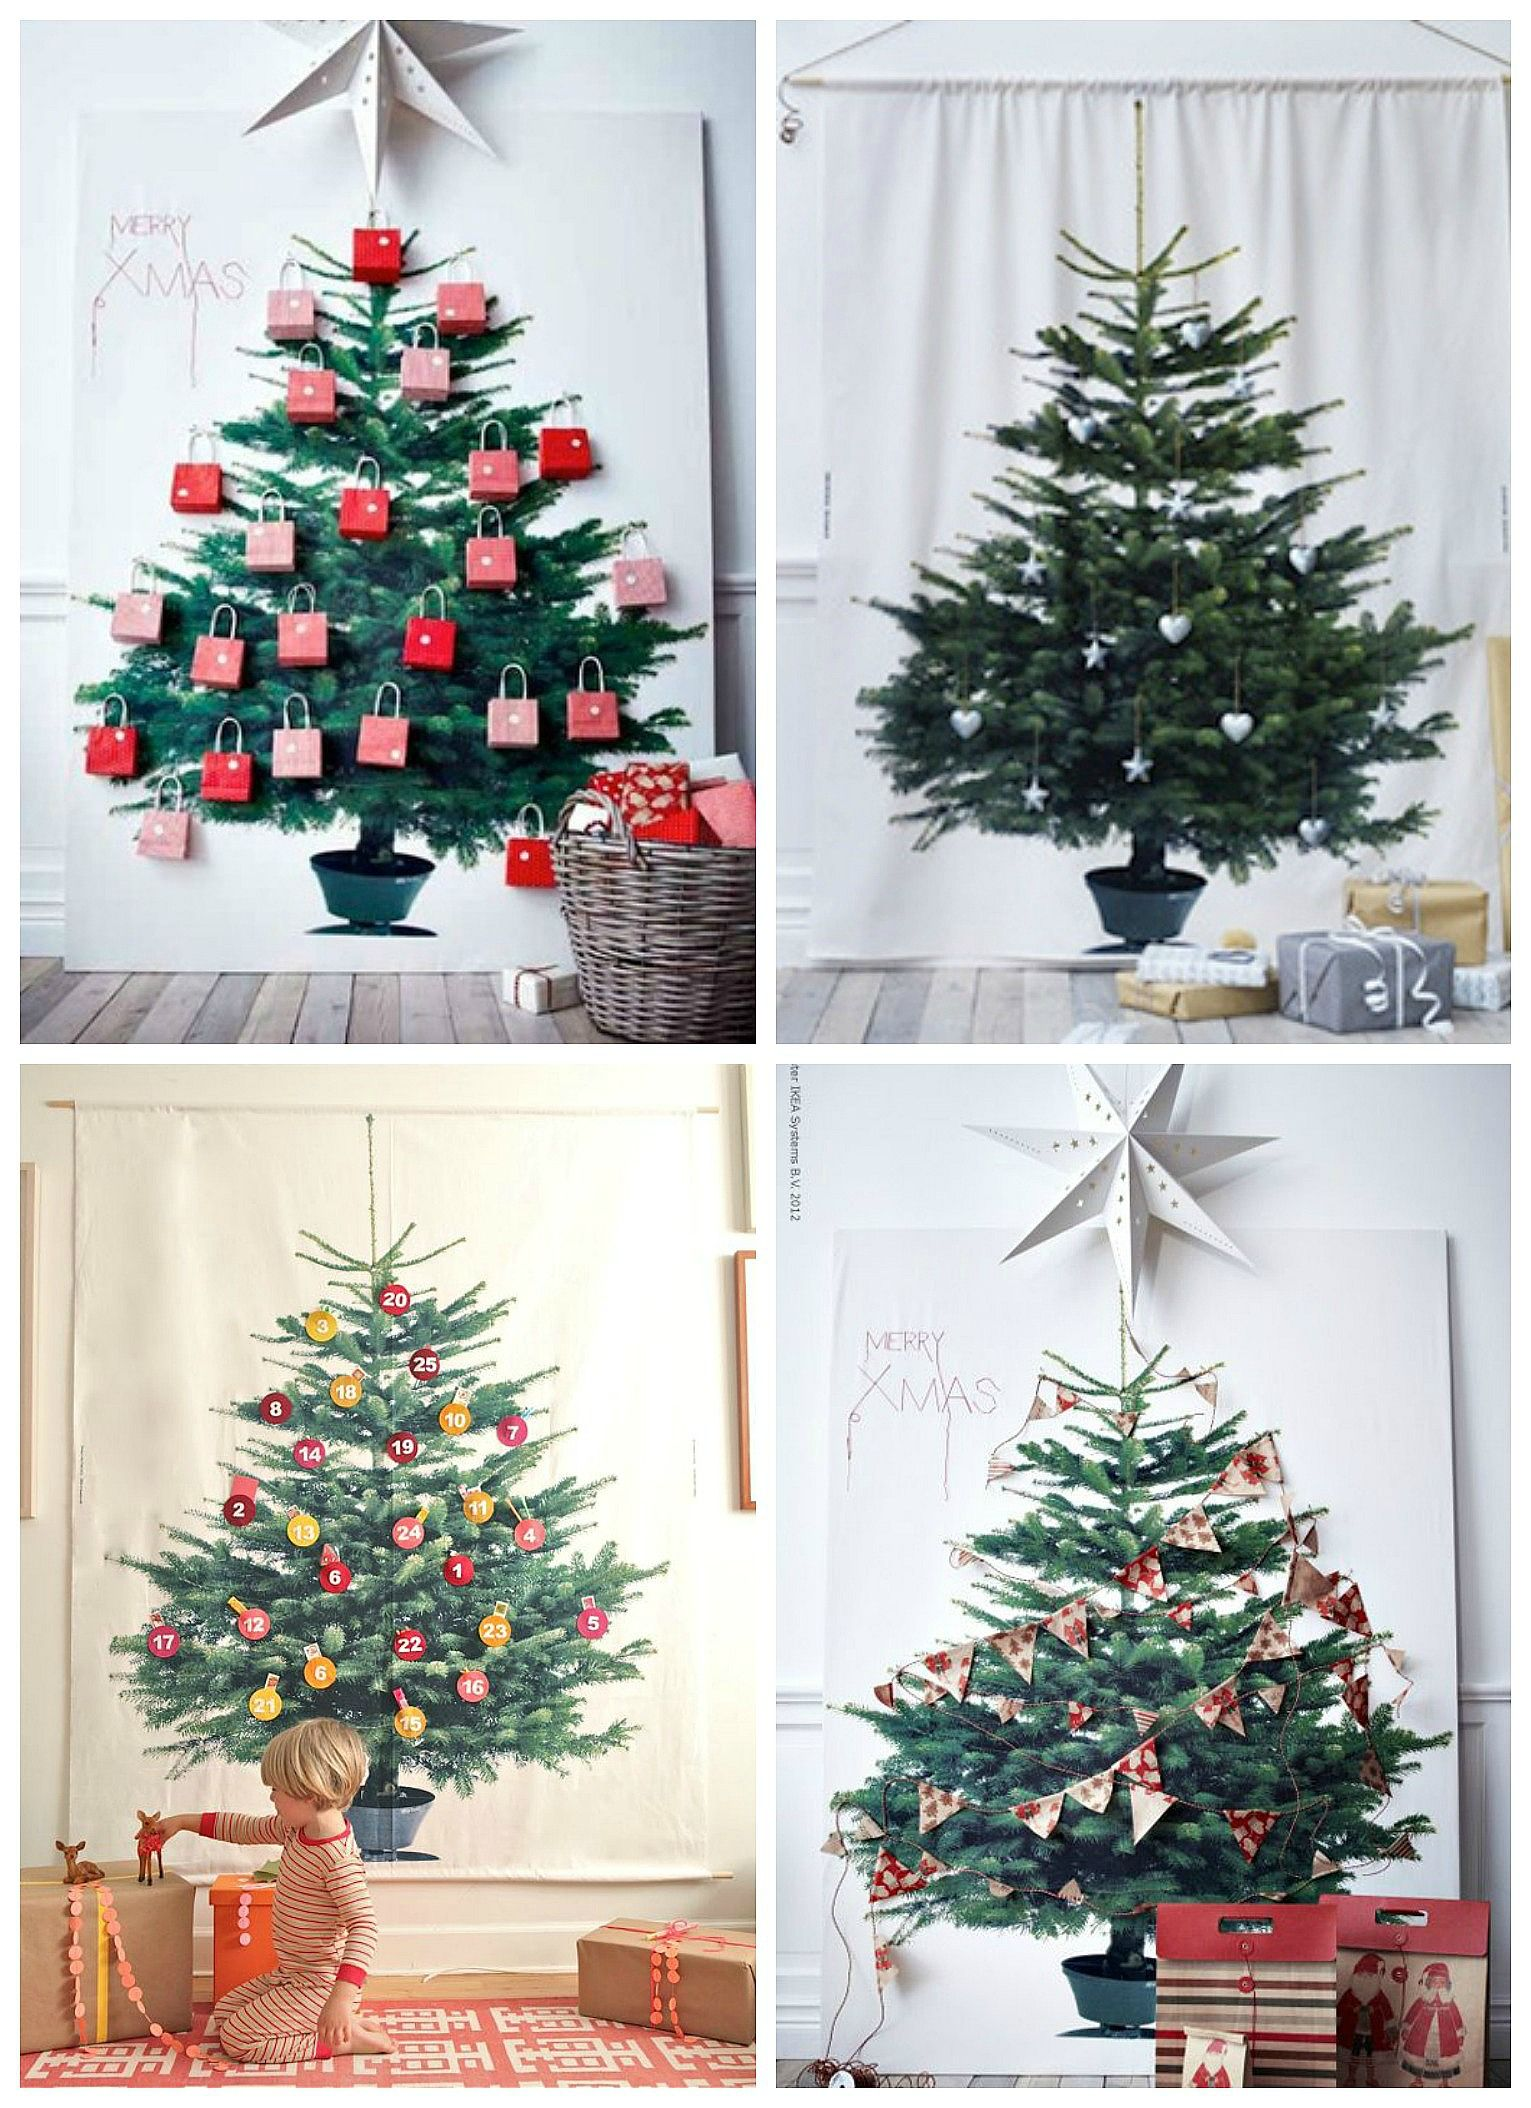 fabric christmas tree holidays christmas ii pinterest noel deco noel and cadeau noel. Black Bedroom Furniture Sets. Home Design Ideas